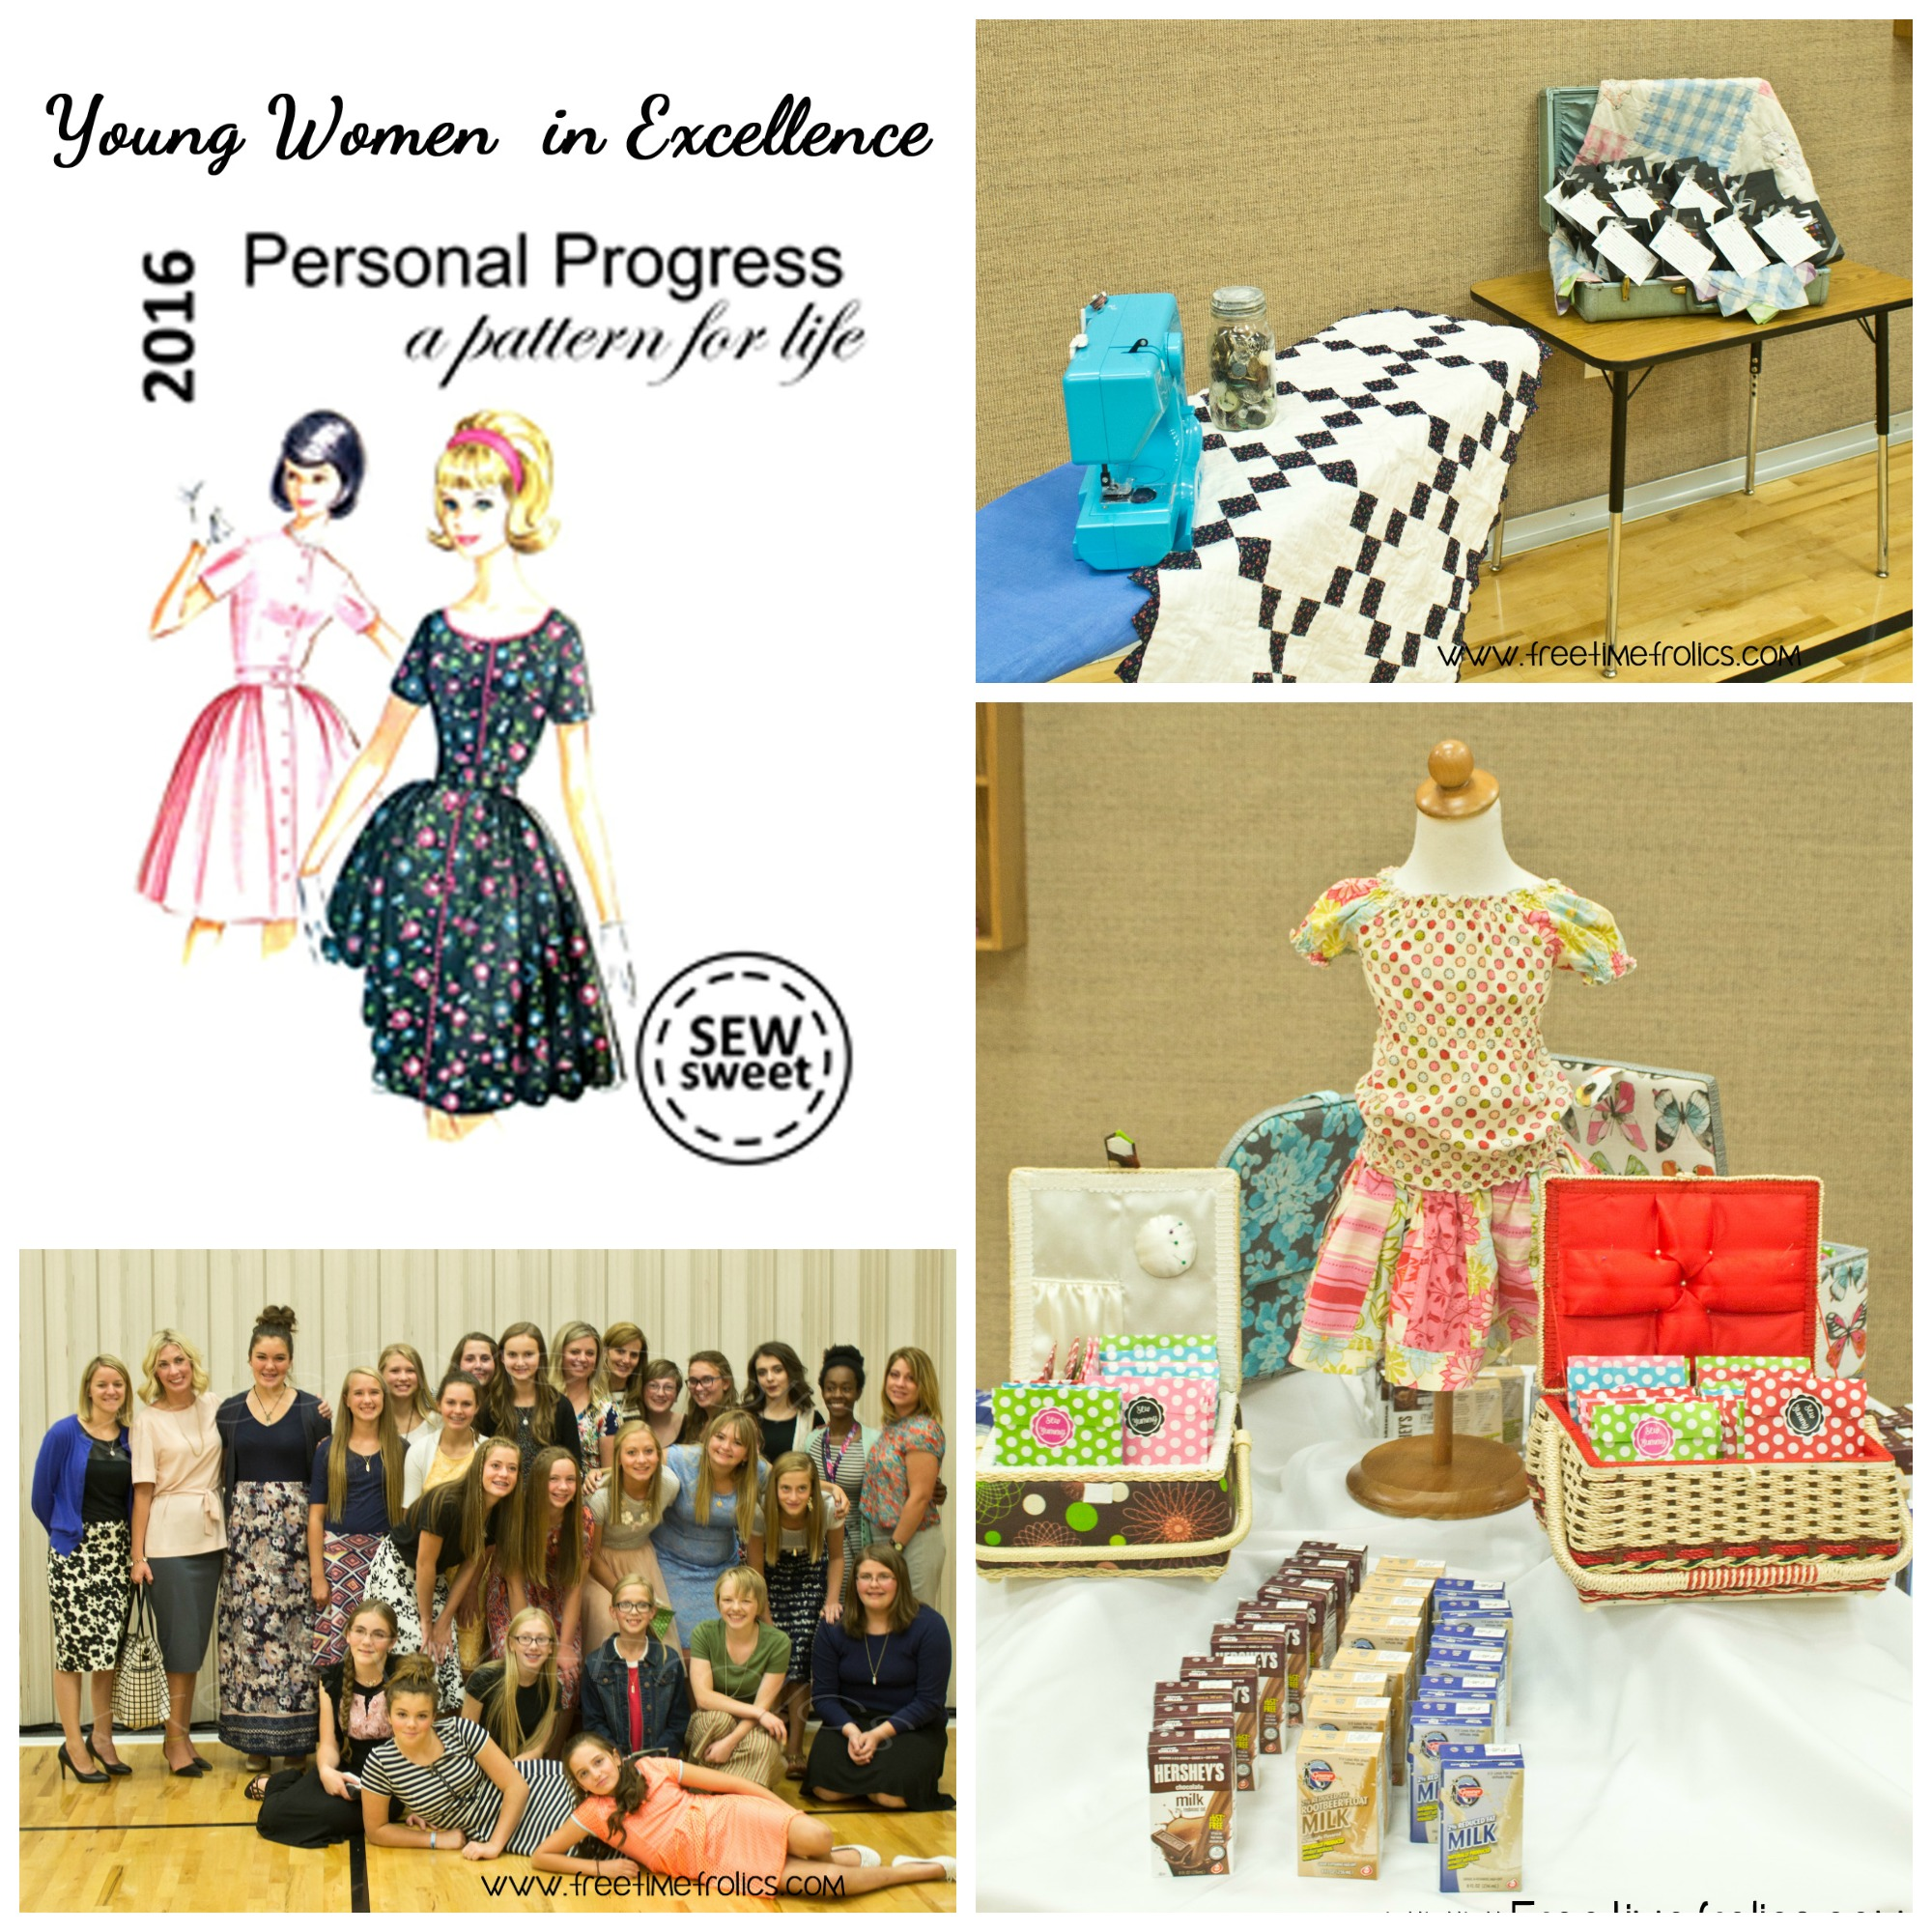 Young Women in Excellence sewing theme www.freetimefrolics.com